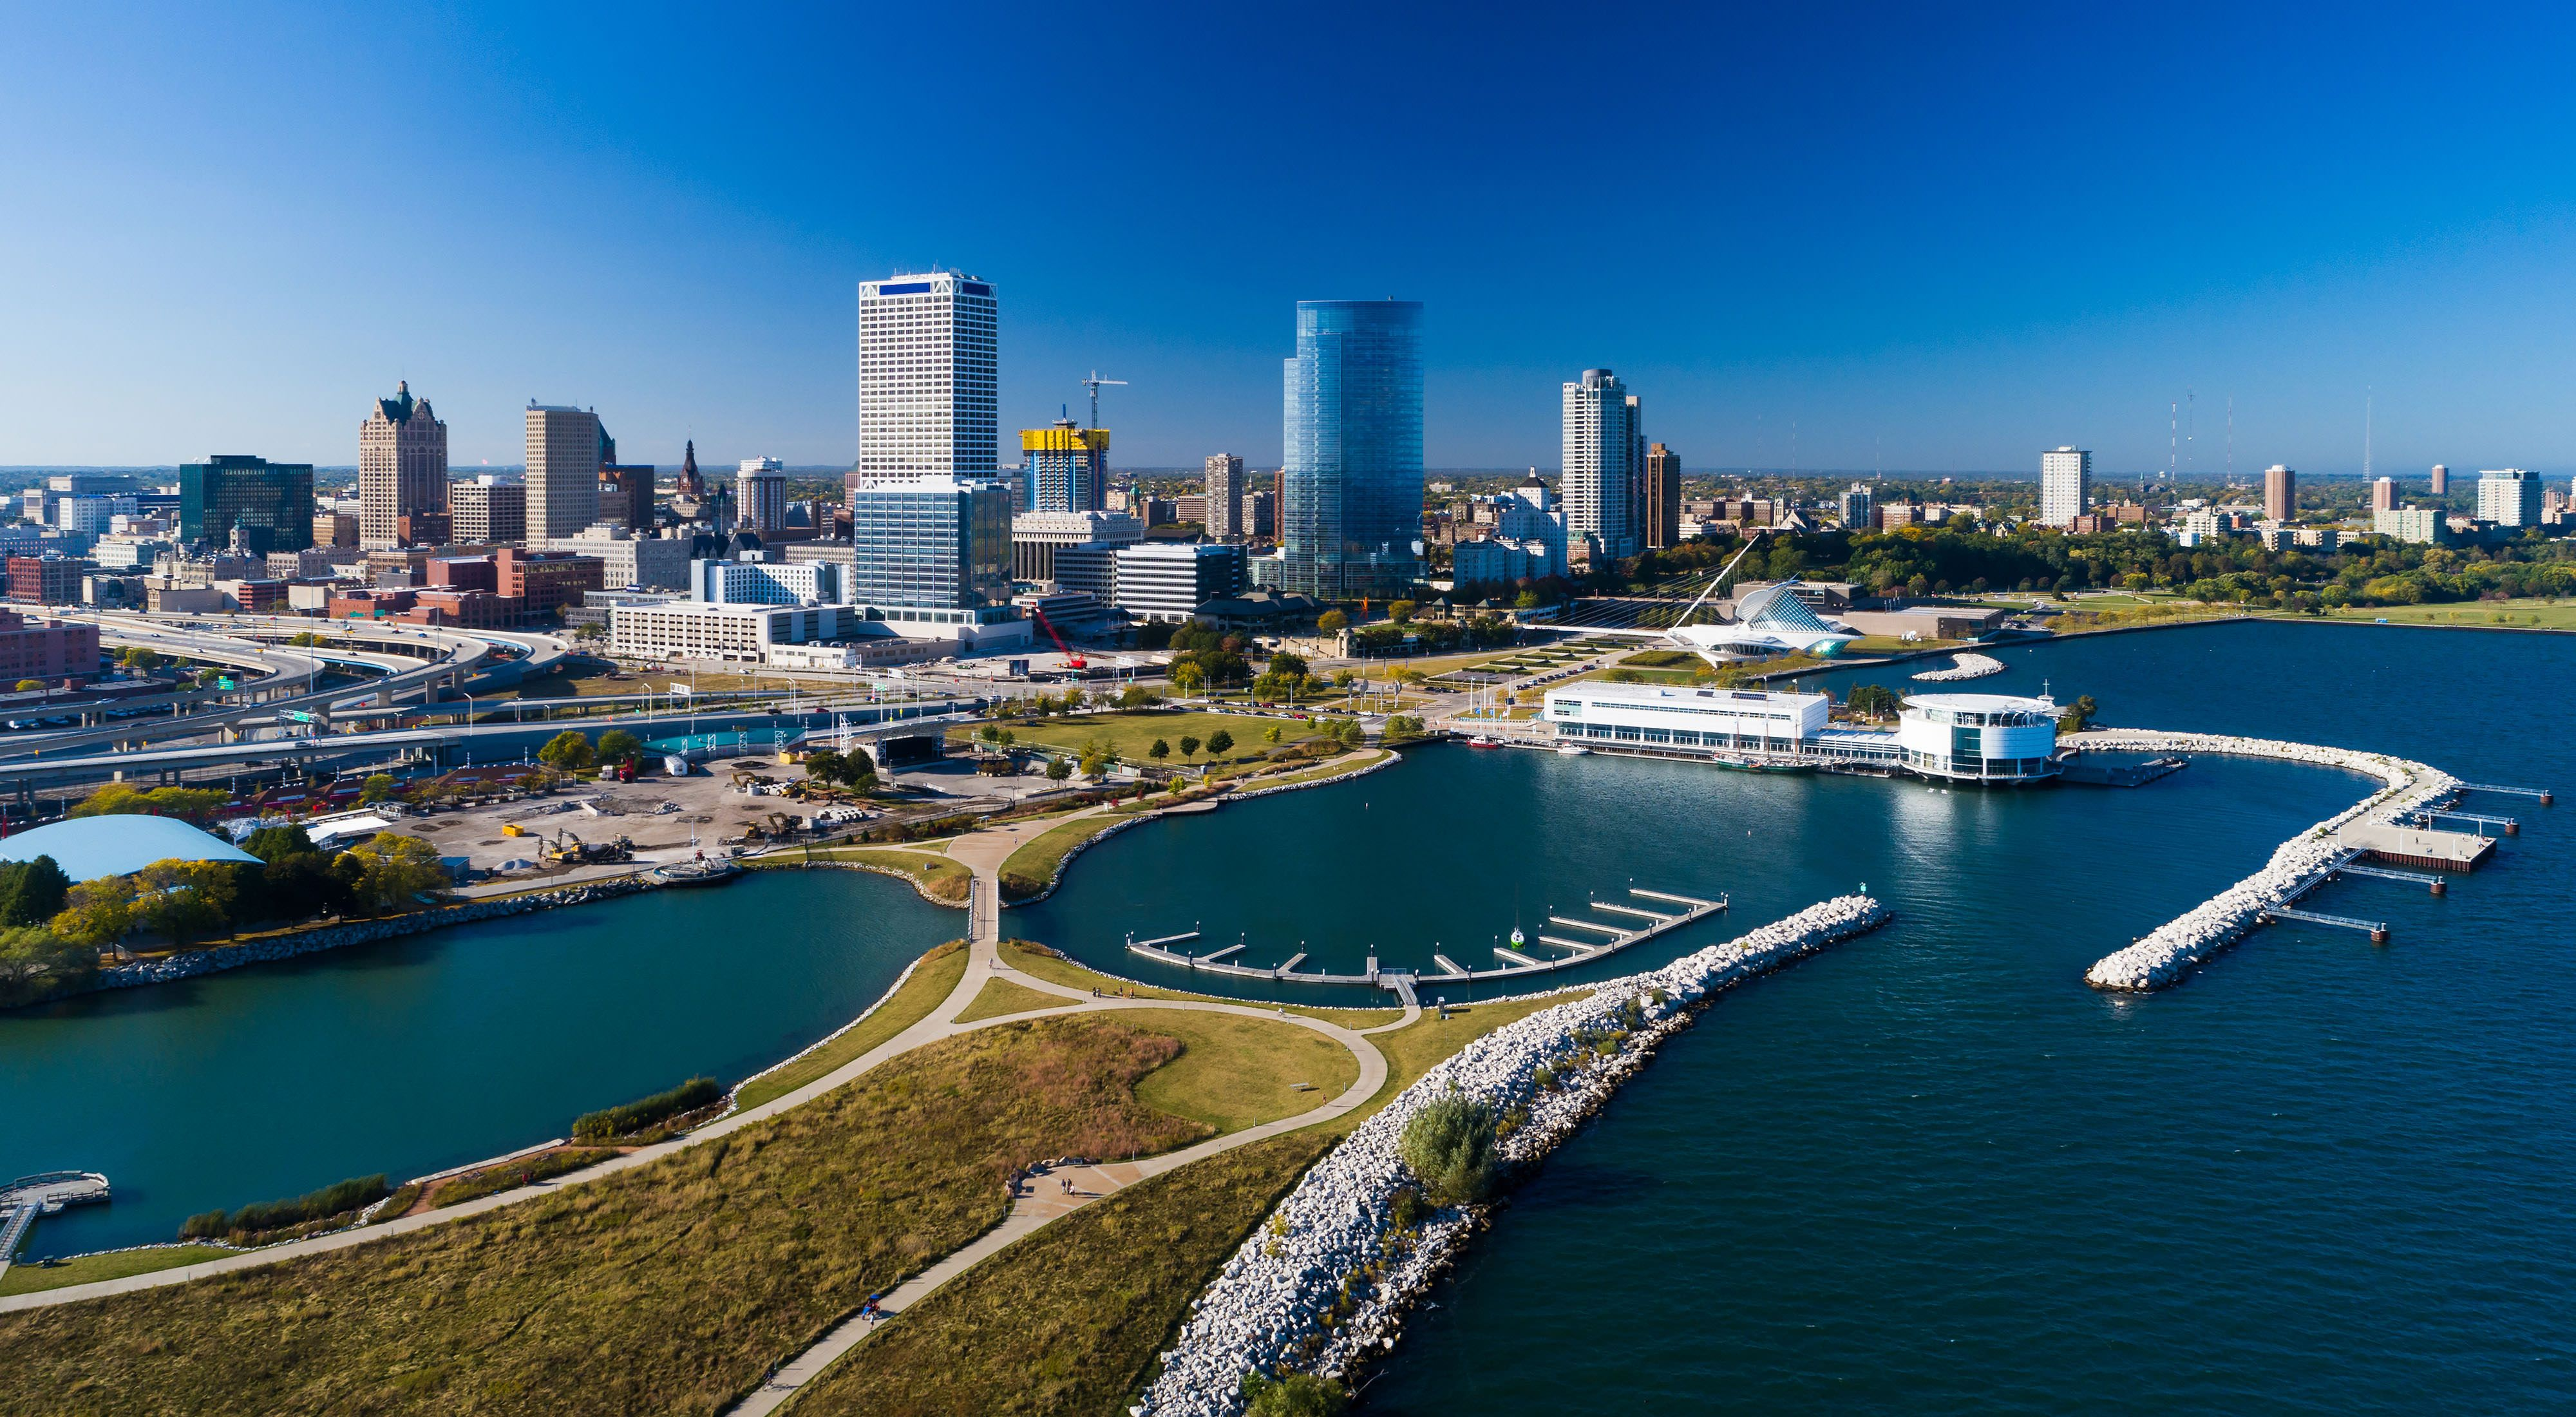 Aerial image of Milwaukee skyline on a blue sky day with Discovery World and Lakeshore State Park in the foreground.